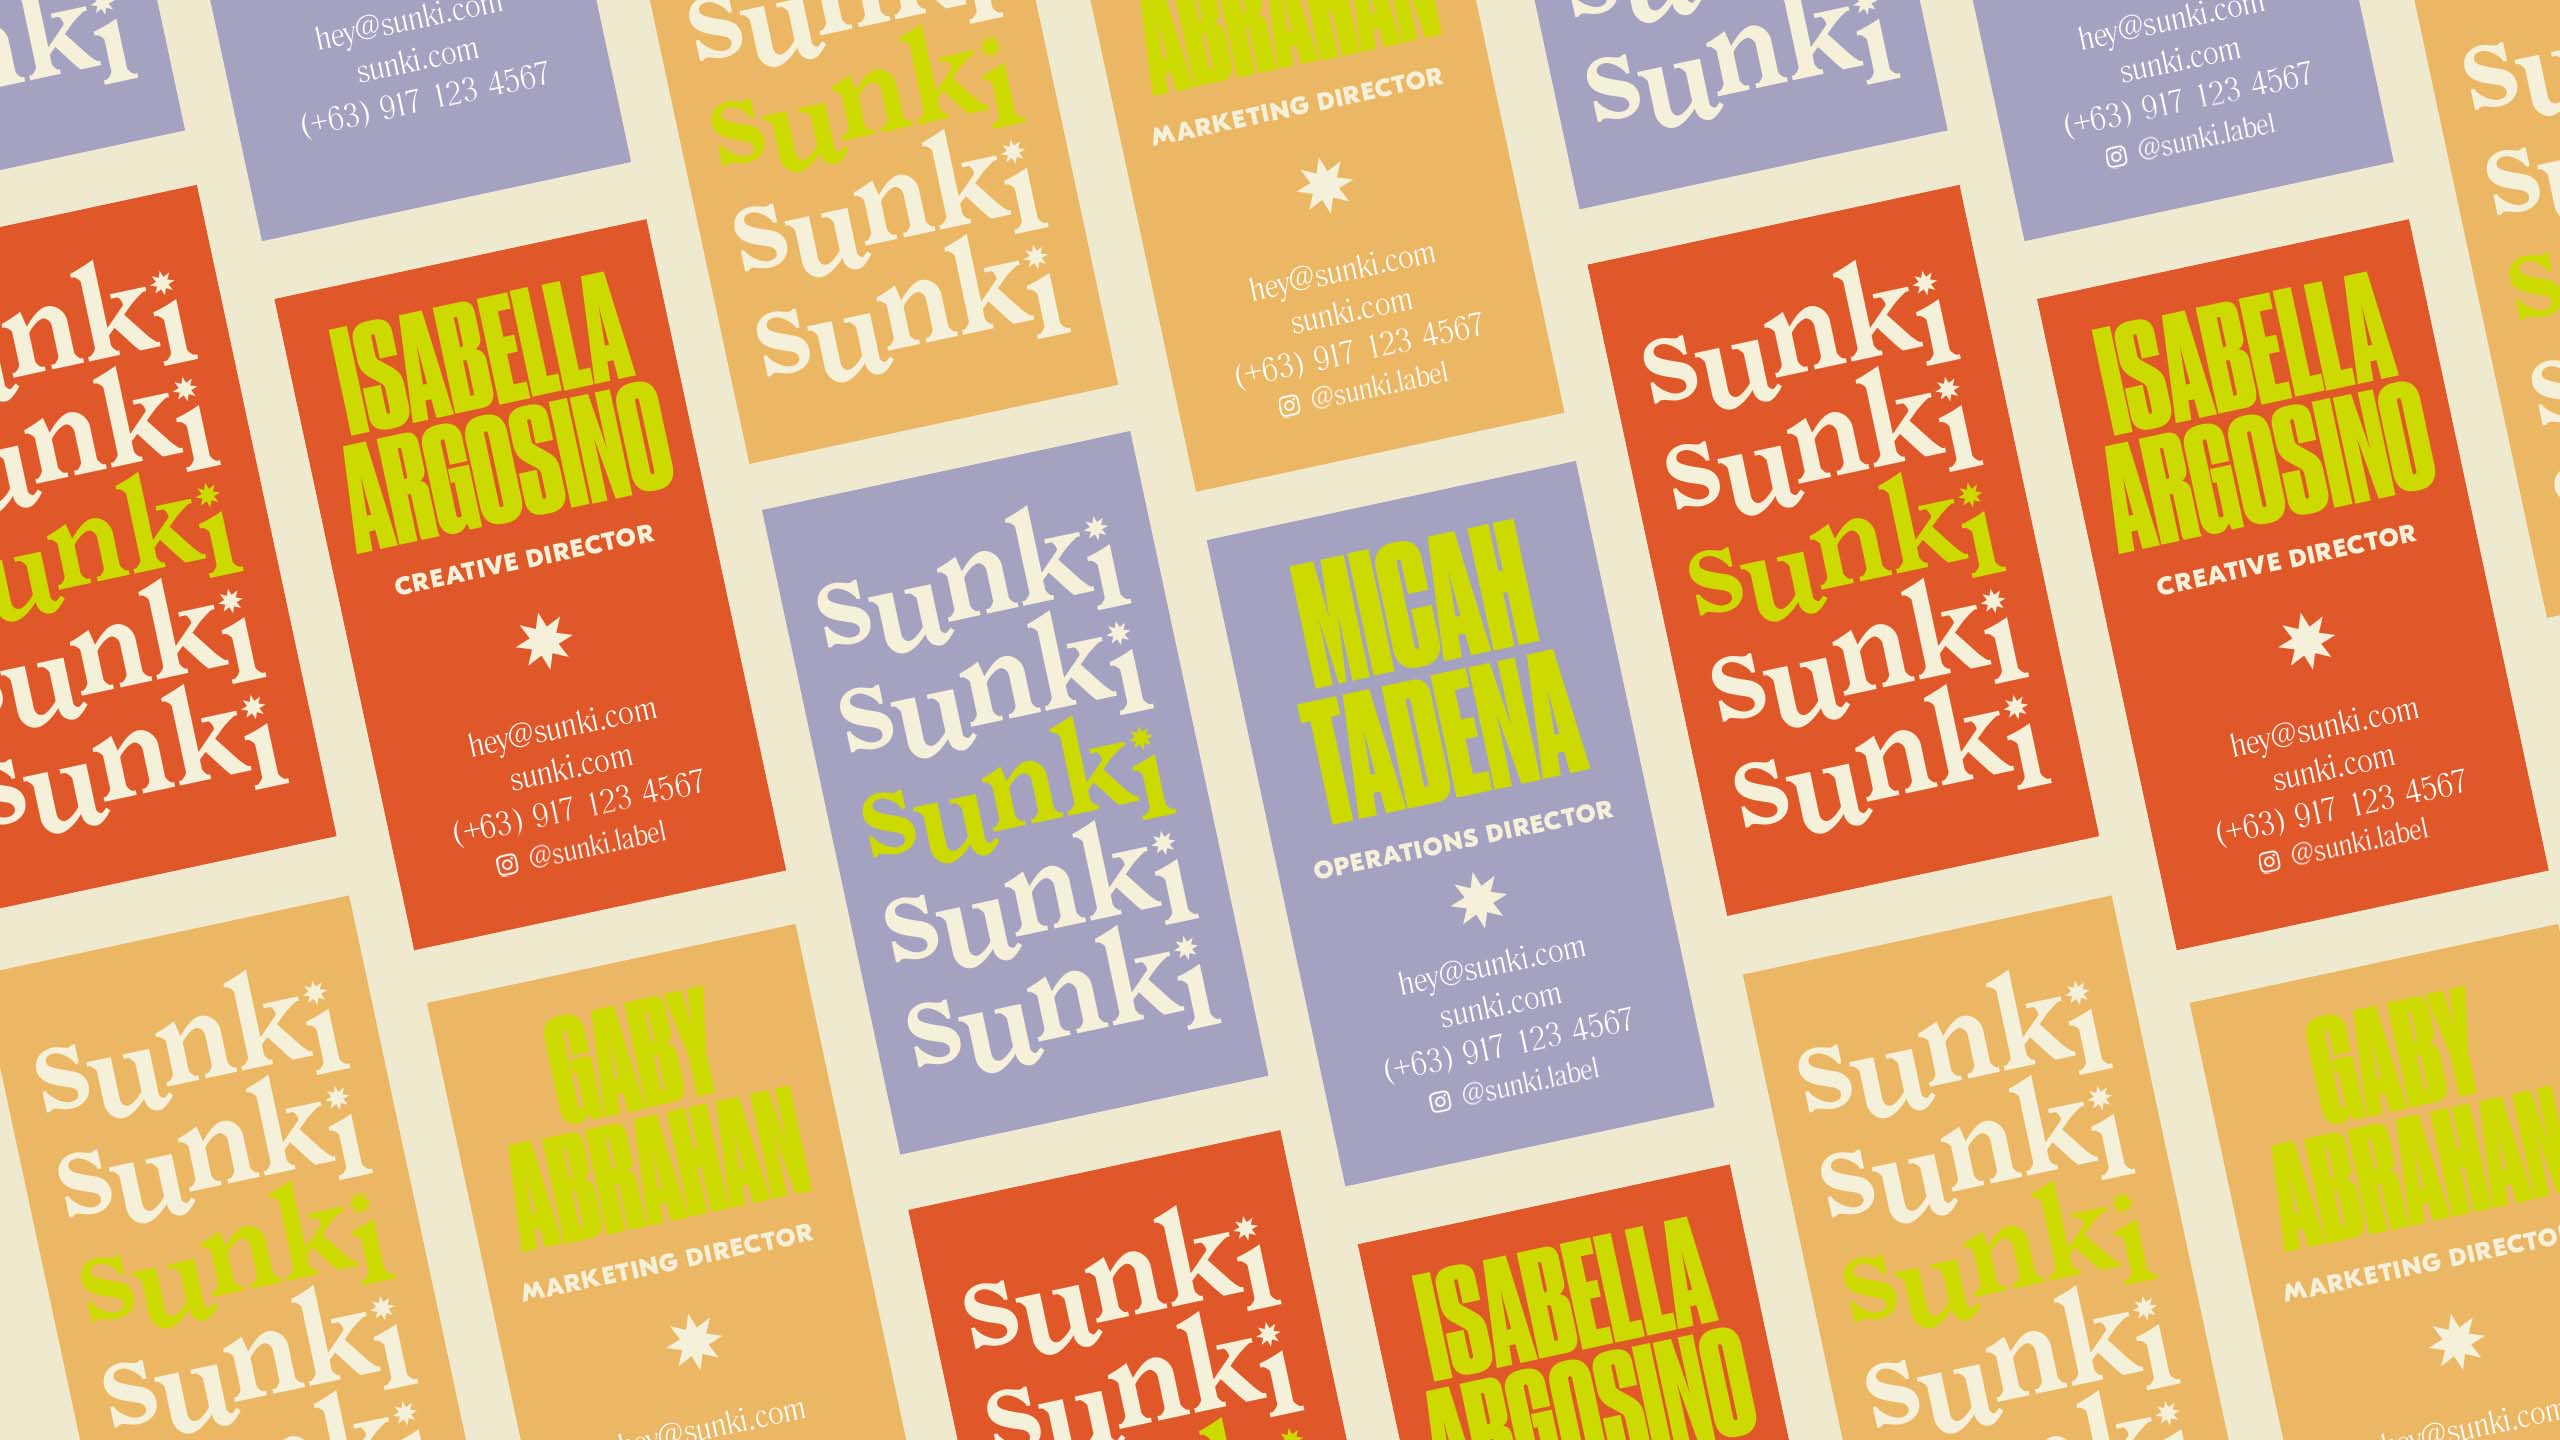 Bold and colorful business card design for sustainable retail brand Sunki